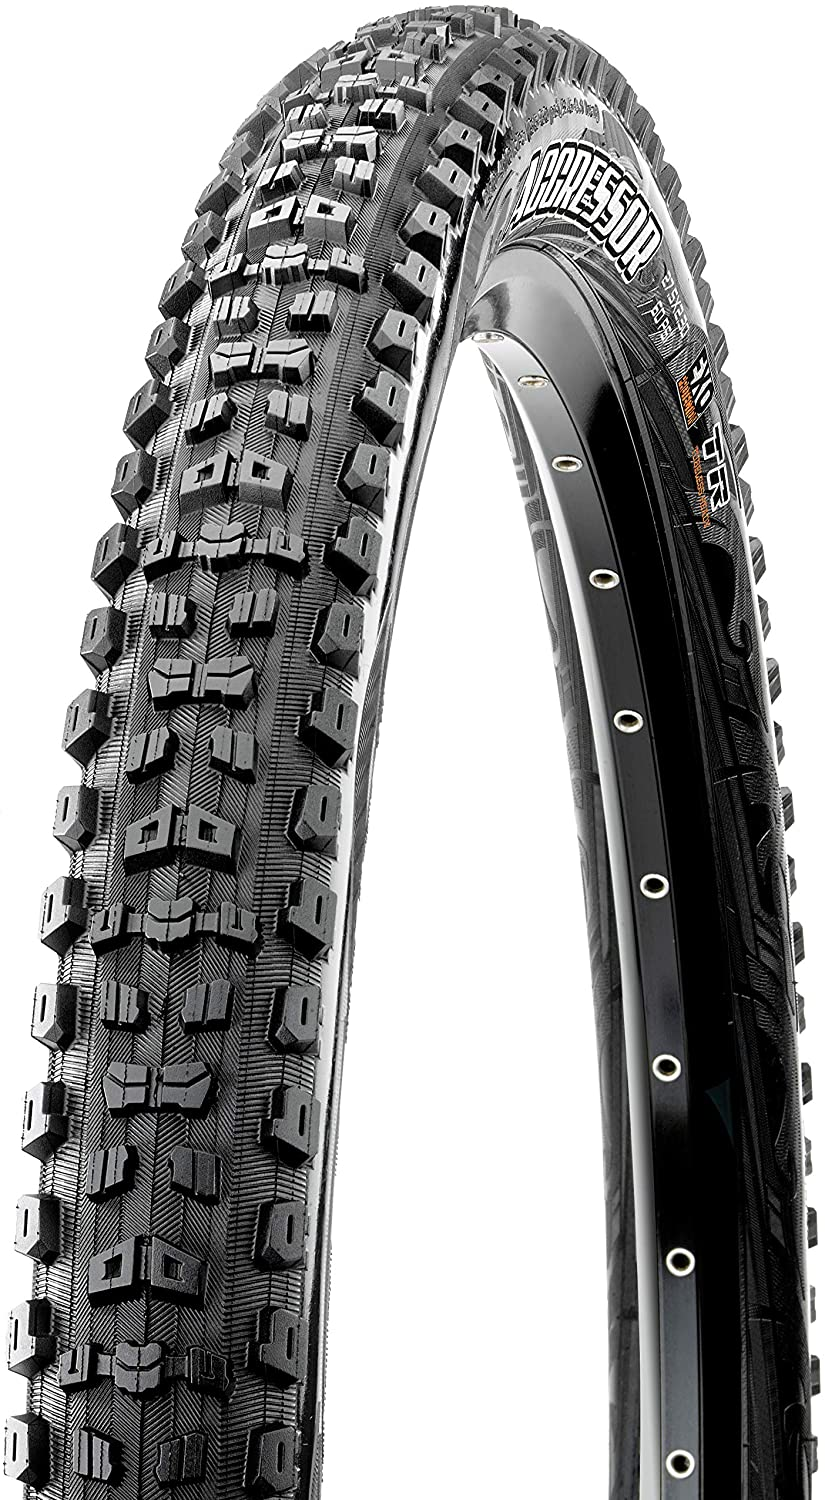 MAXXIS - Aggressor Dual Fort Worth Mall Compound Tubeless National products All Tire Conditi MTB